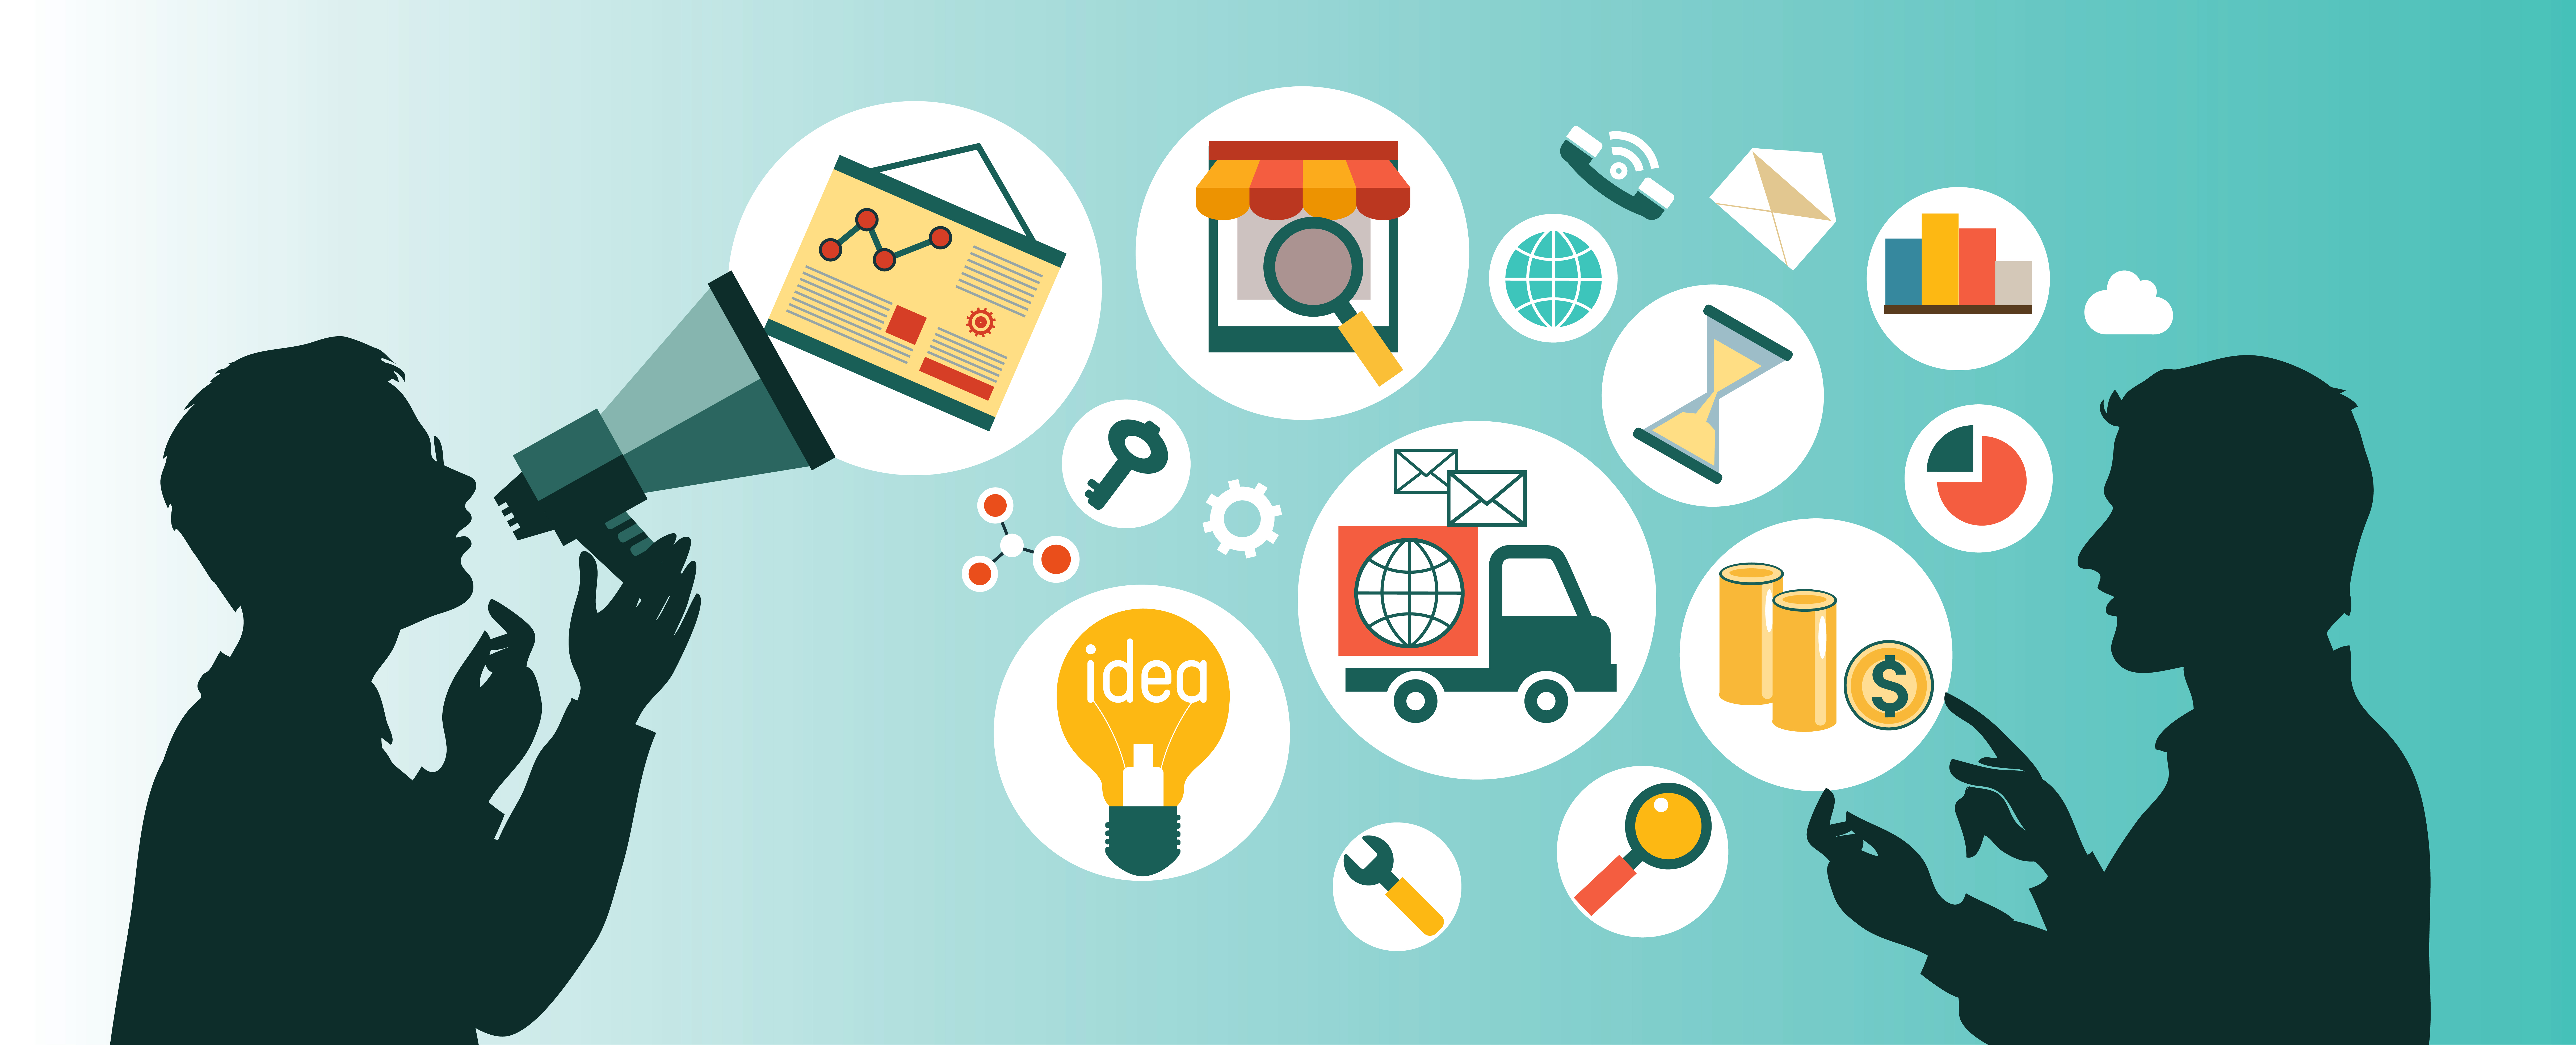 flat vector business communication and connection business concept